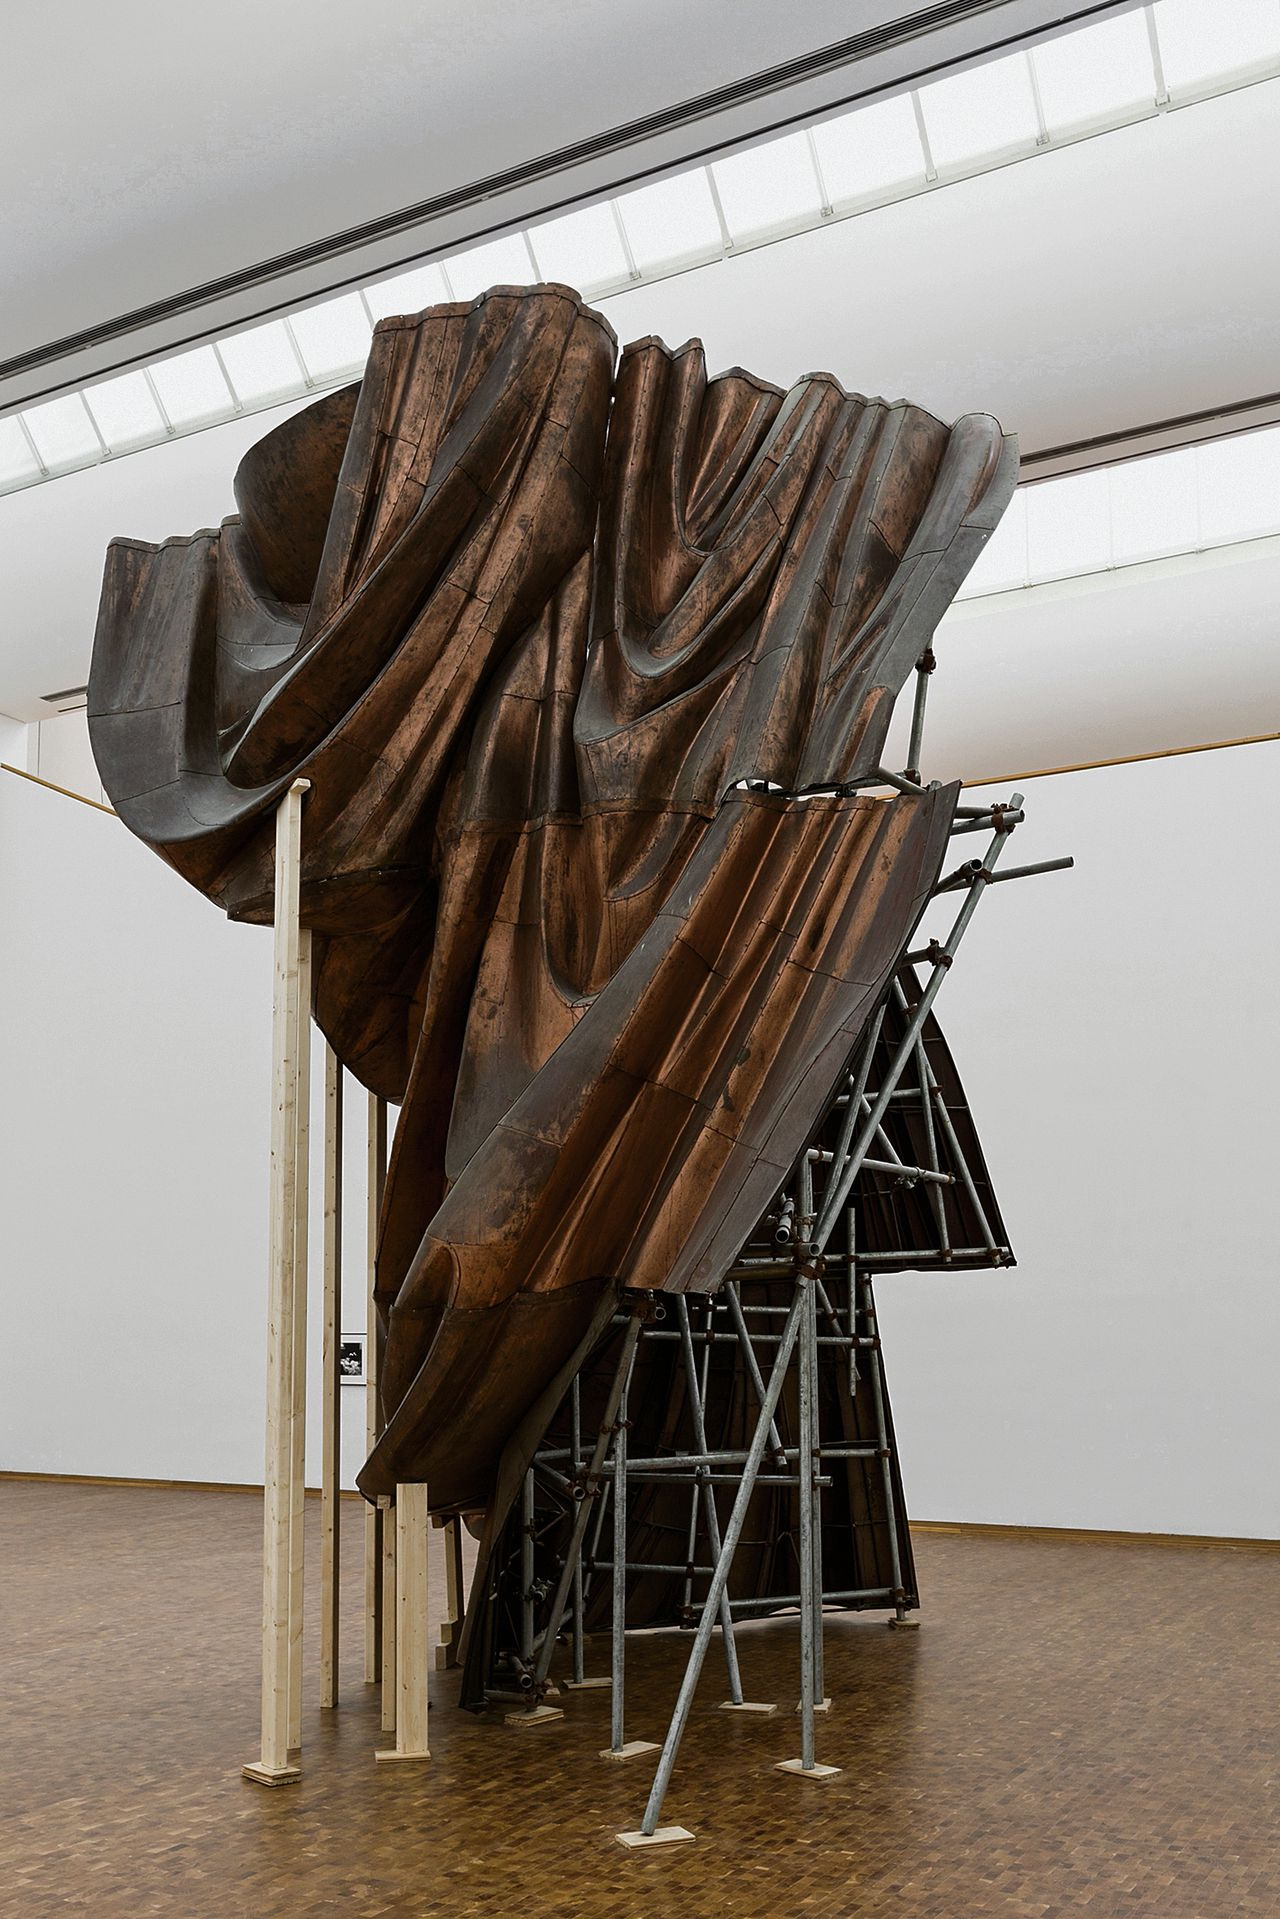 Danh Vo, We The People, Armpit, 2011-2013